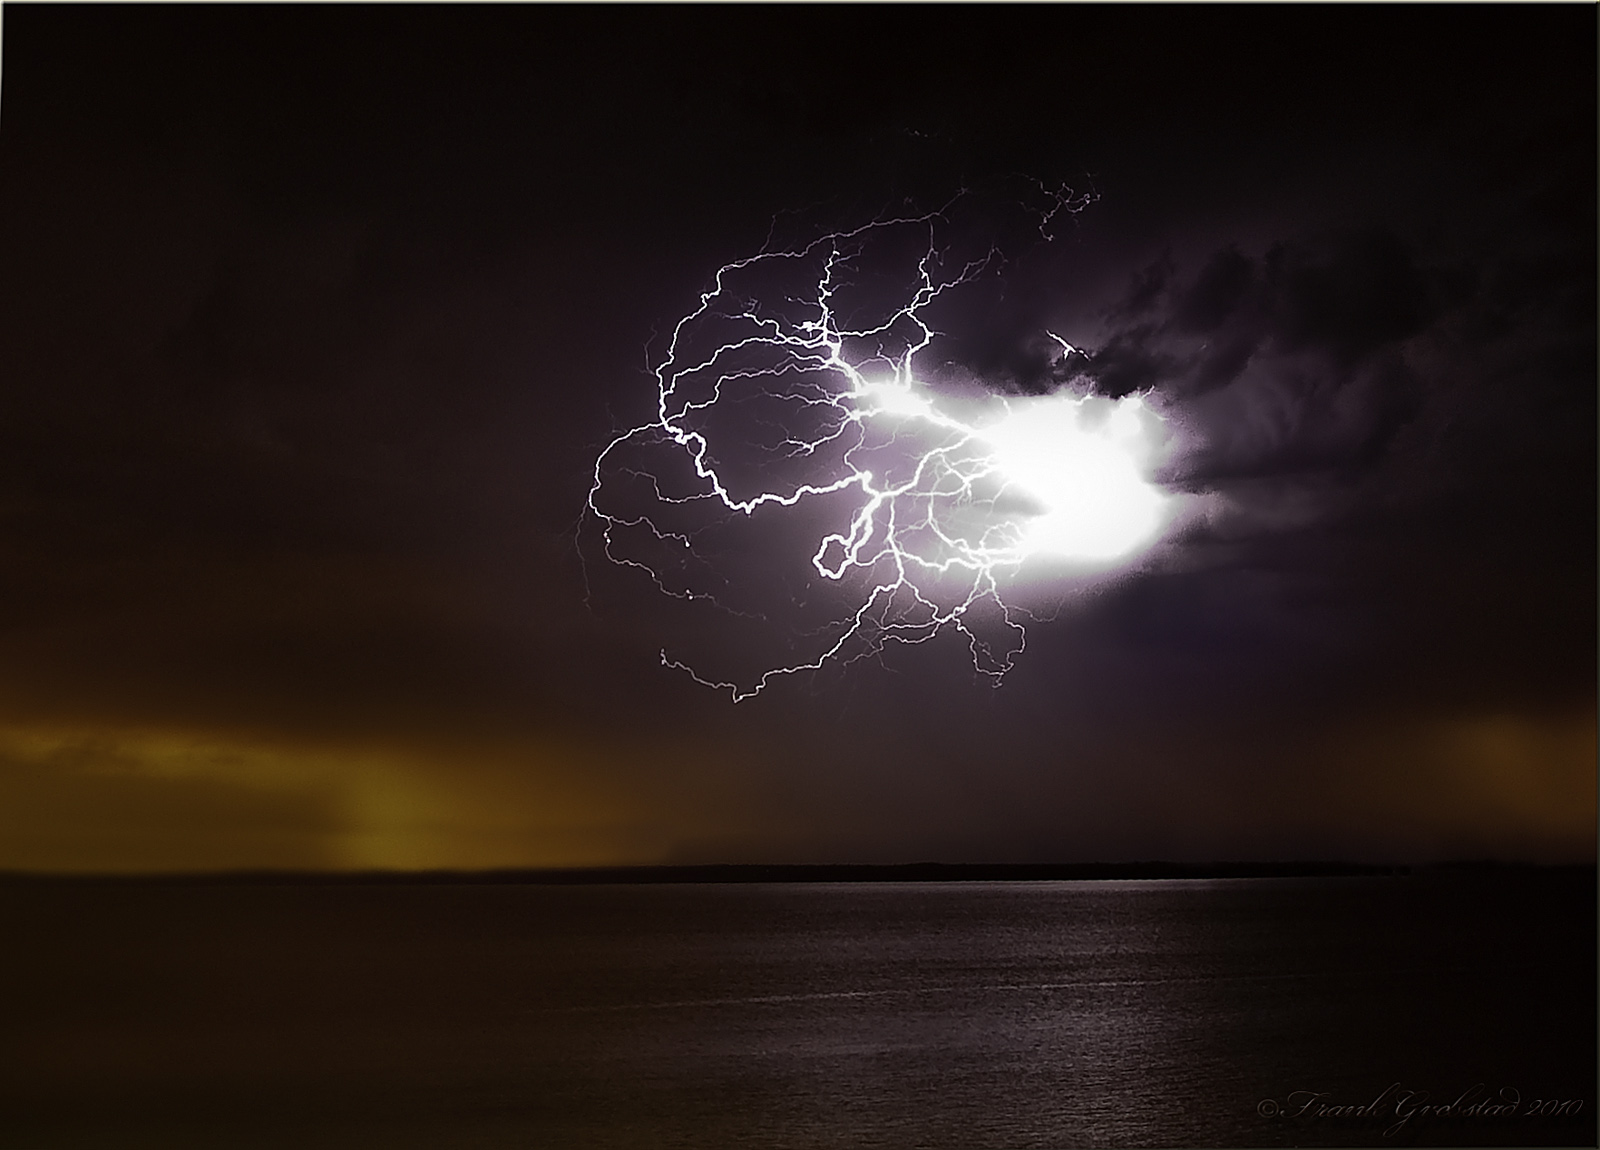 Birth of a thunderstorm